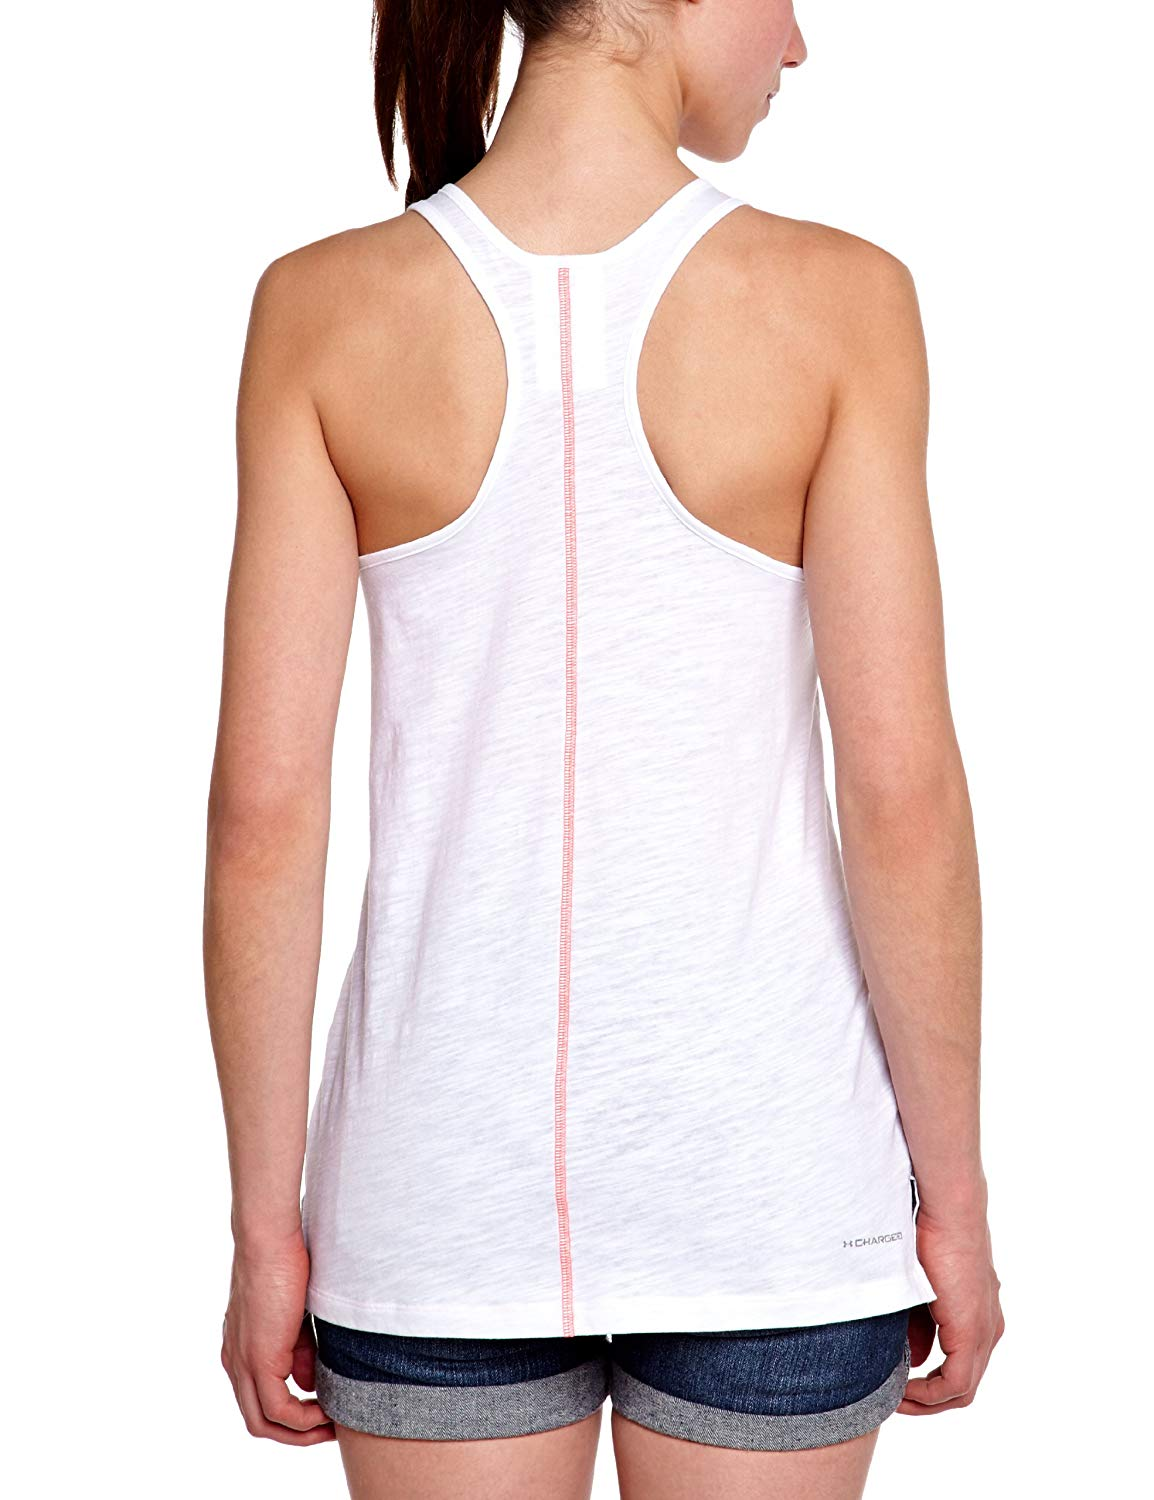 Under Armour Q2 Slub Ladies Tank Top White